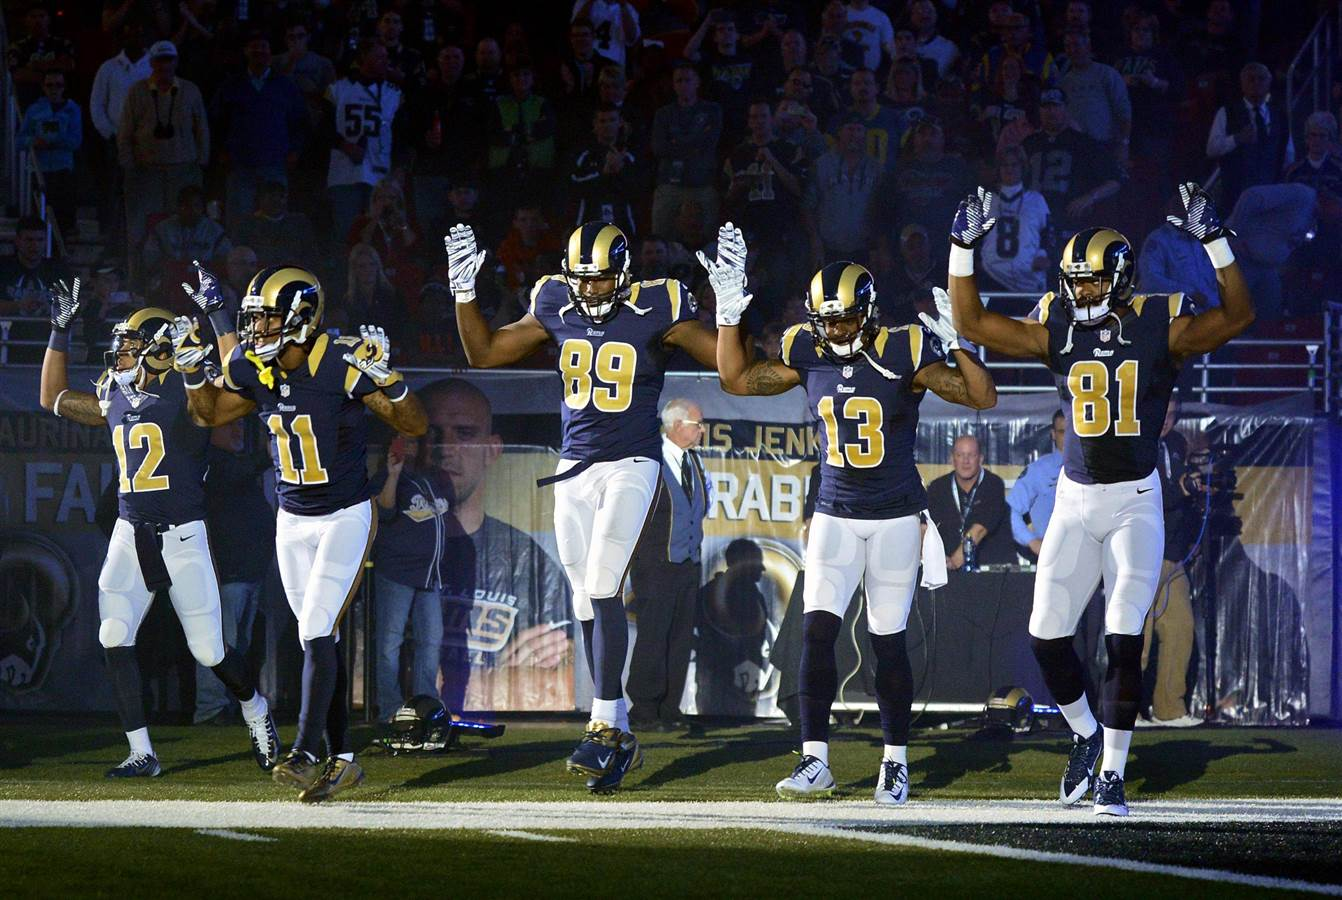 St. Louis Rams Hands Up Would have had greater impact if the NFL in constant legal trouble